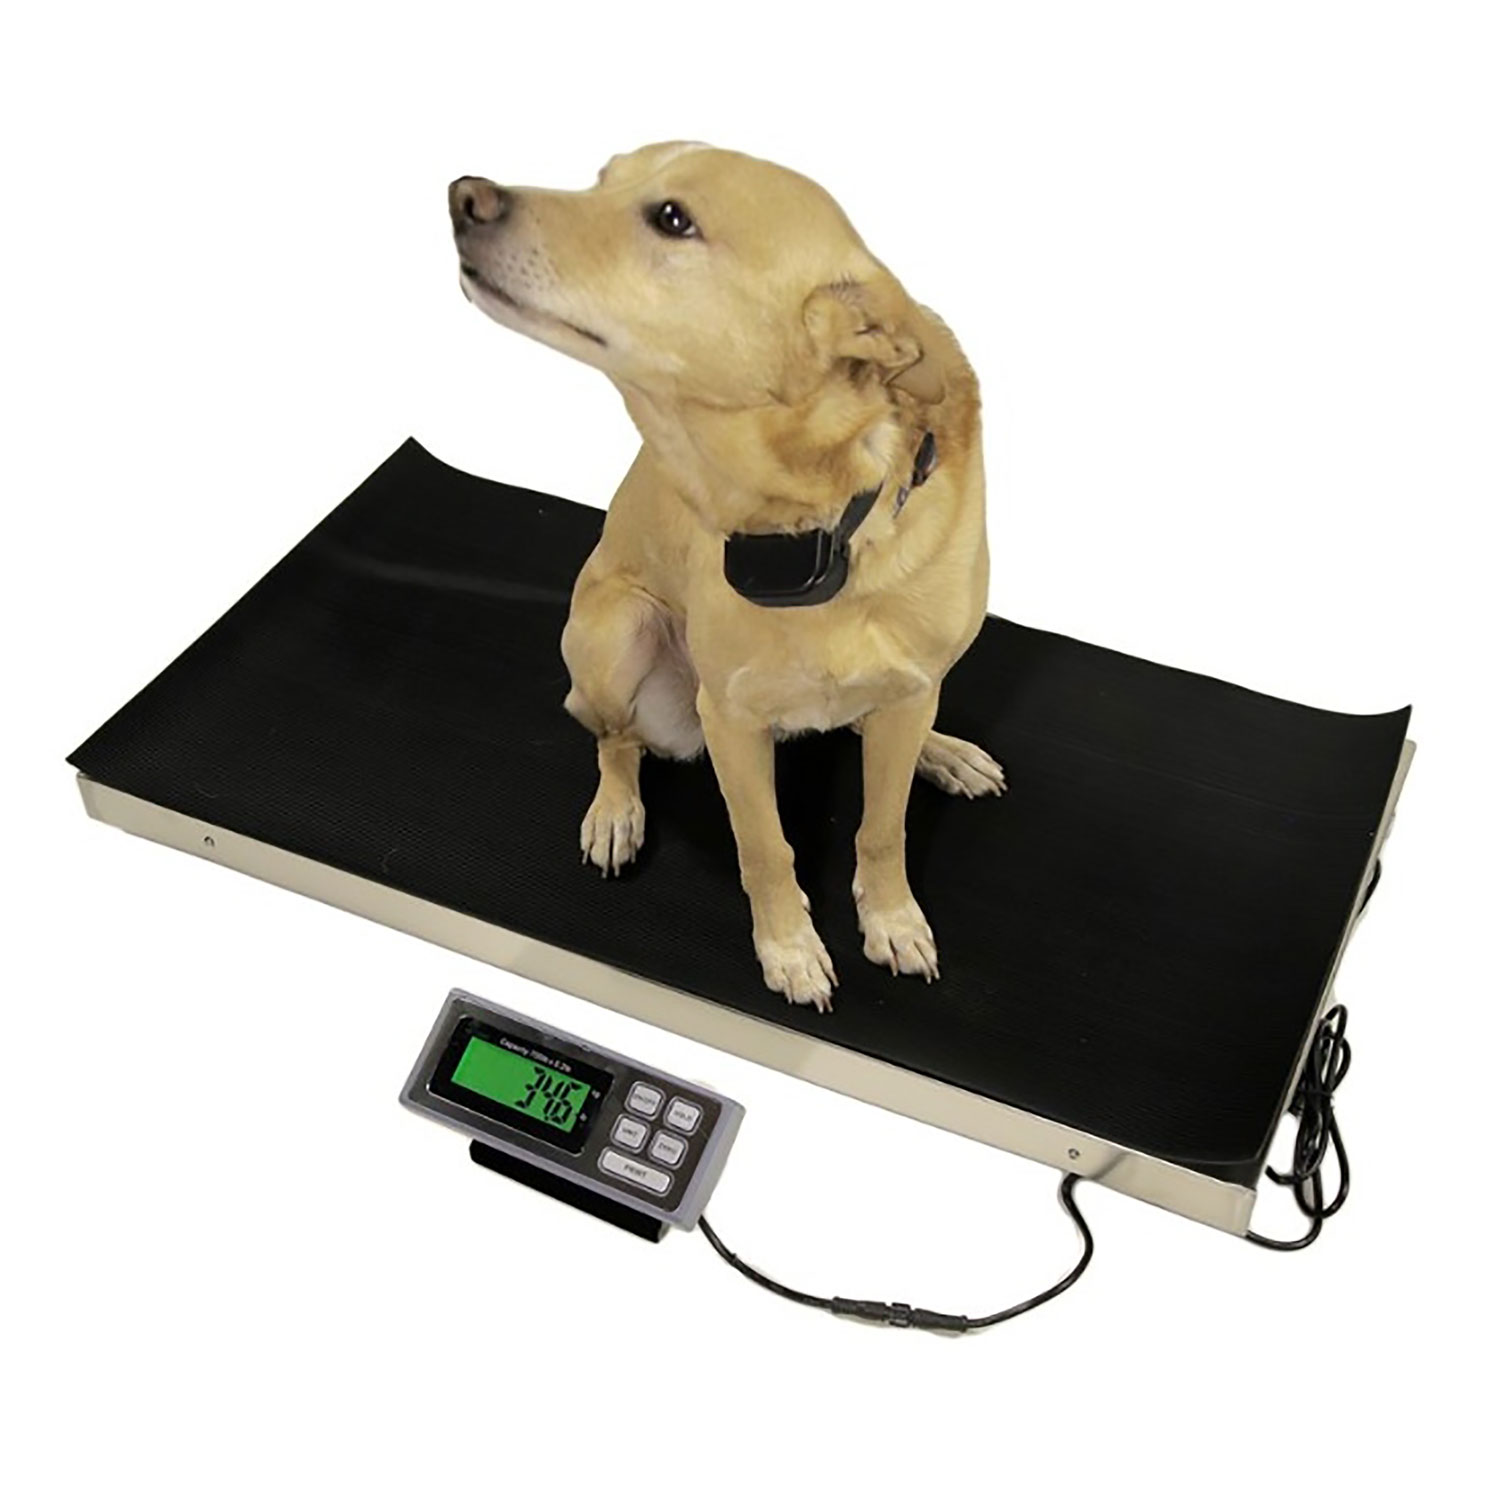 Large Veterinary Scale 700lb x 0.2lb Tree LVS-700 Livestock Pet